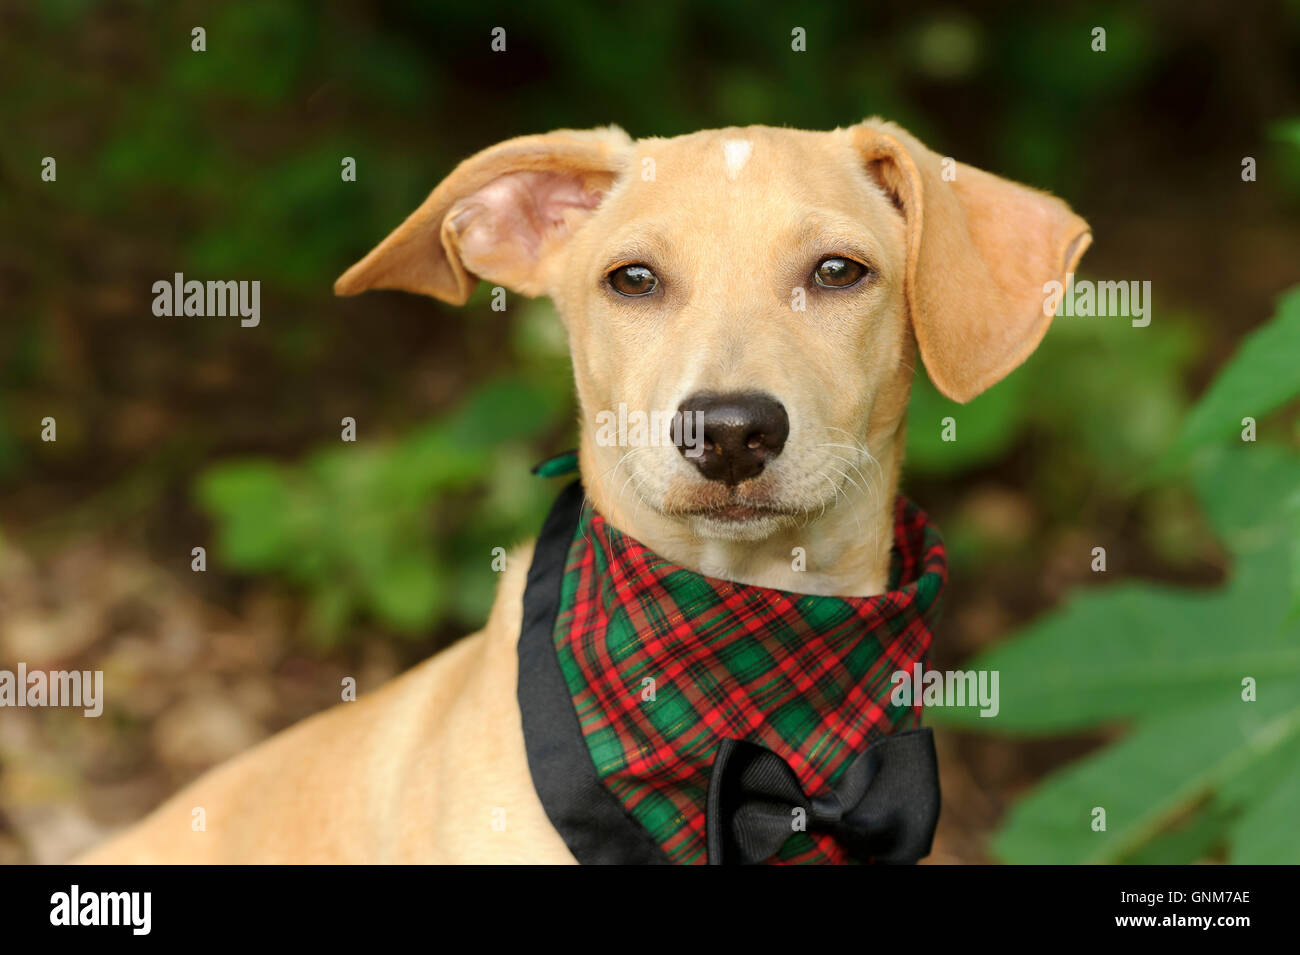 Cute Dog Costume Is A Puppy Dog All Dressed Up In His Bow Tie Best